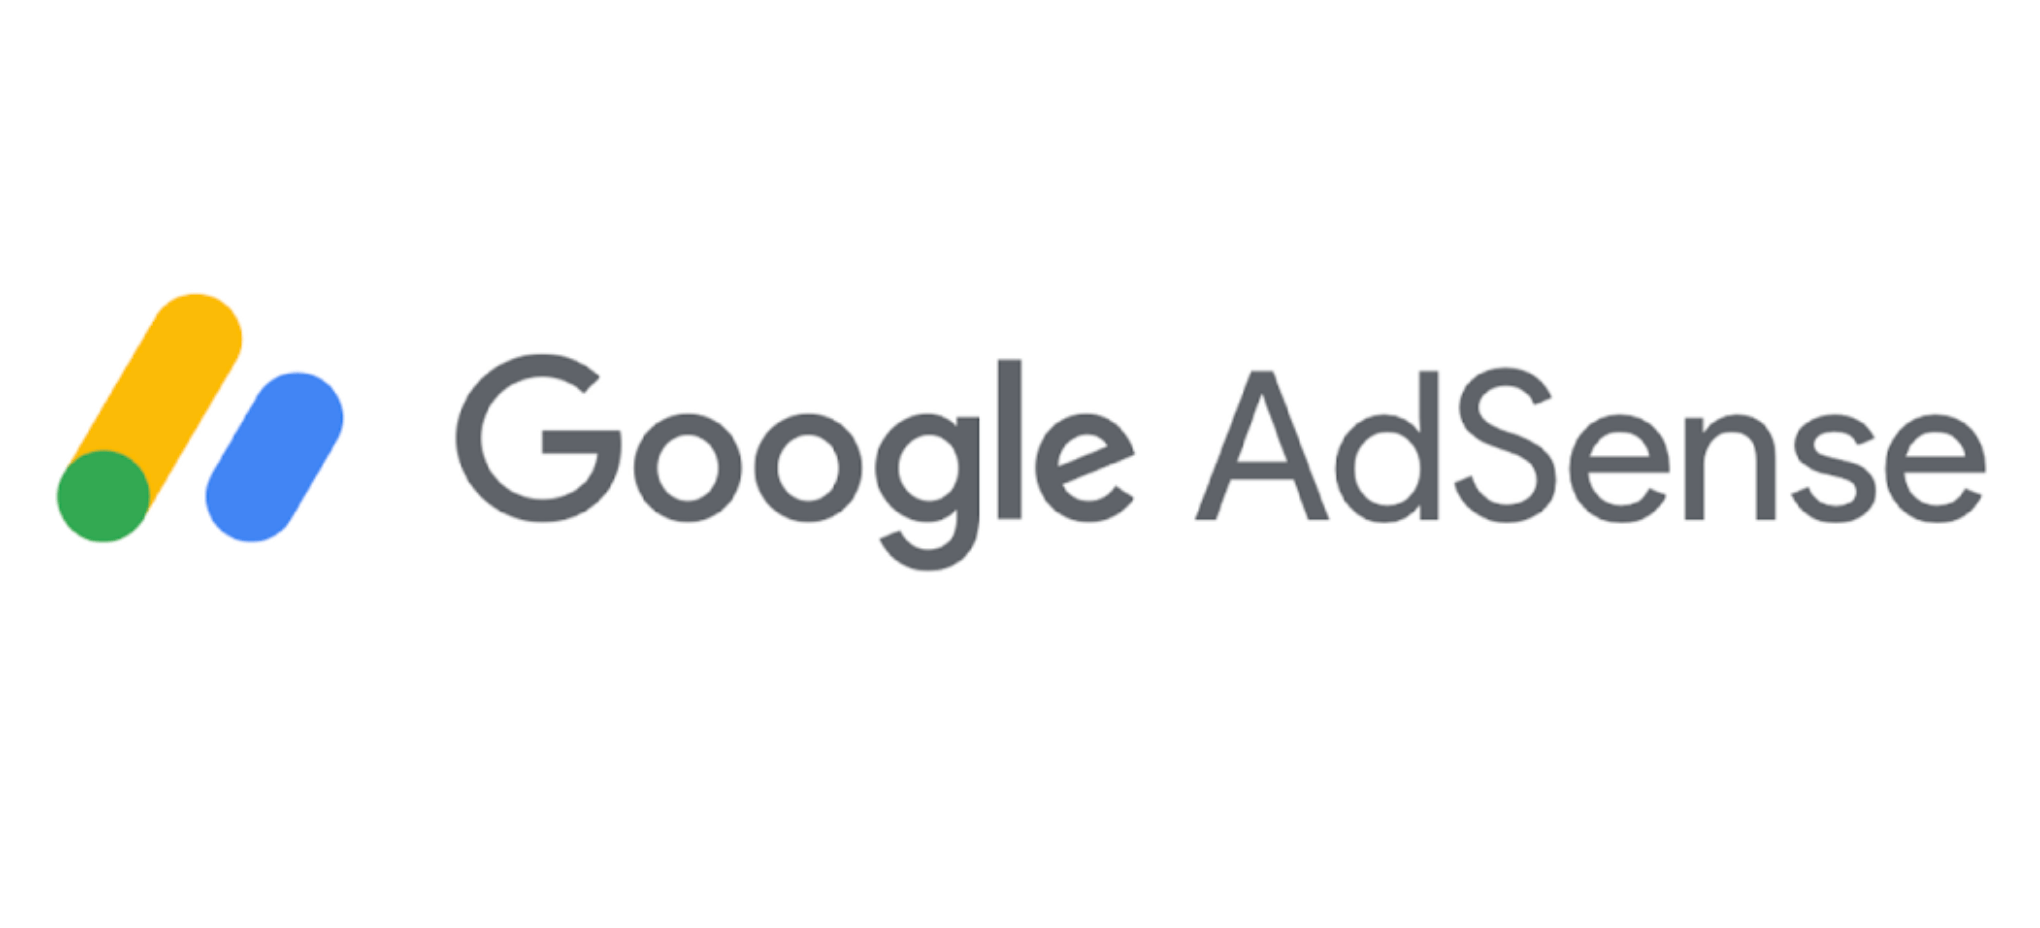 How to Earn Money with Google Adsense  My Step-by-Step Guide